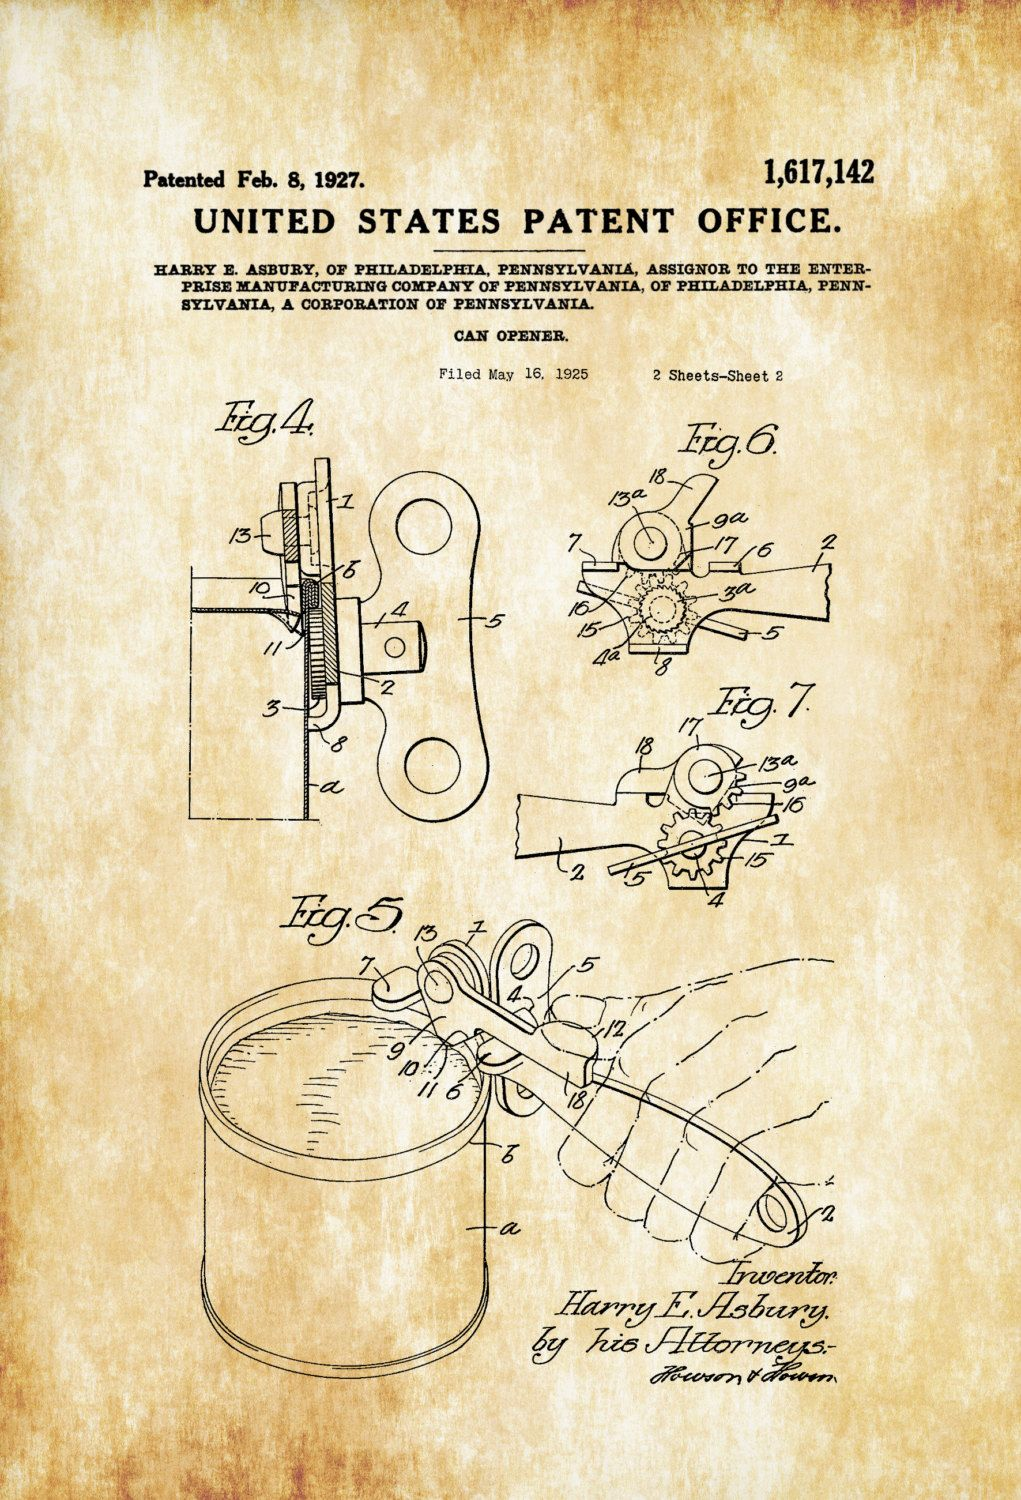 Can Opener Patent Print - Decor, Kitchen Decor, Restaurant Decor ...